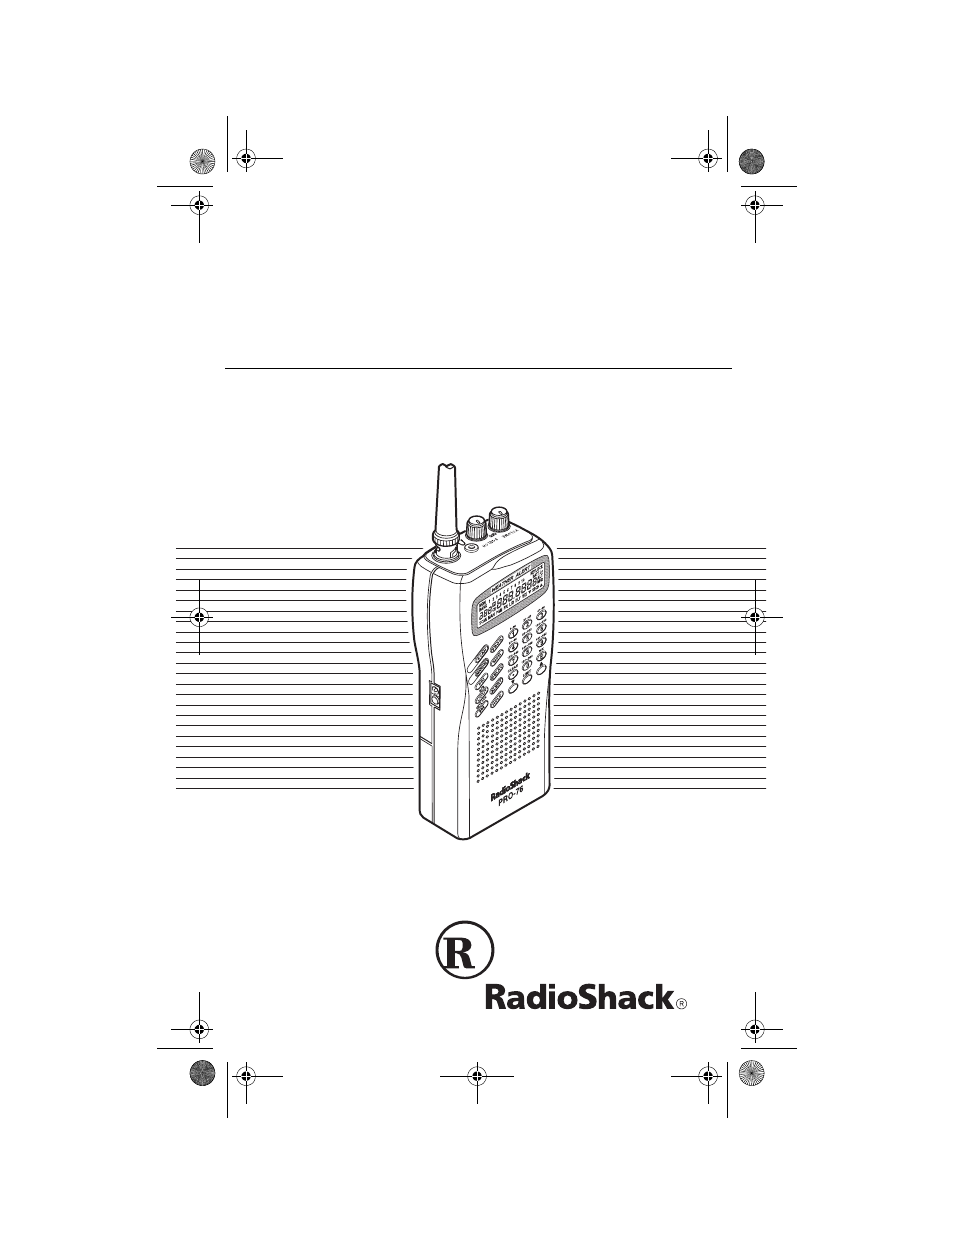 radio shack pro 76 user manual 48 pages rh manualsdir com Radio Shack Pro 205 Radio Shack Pro 205